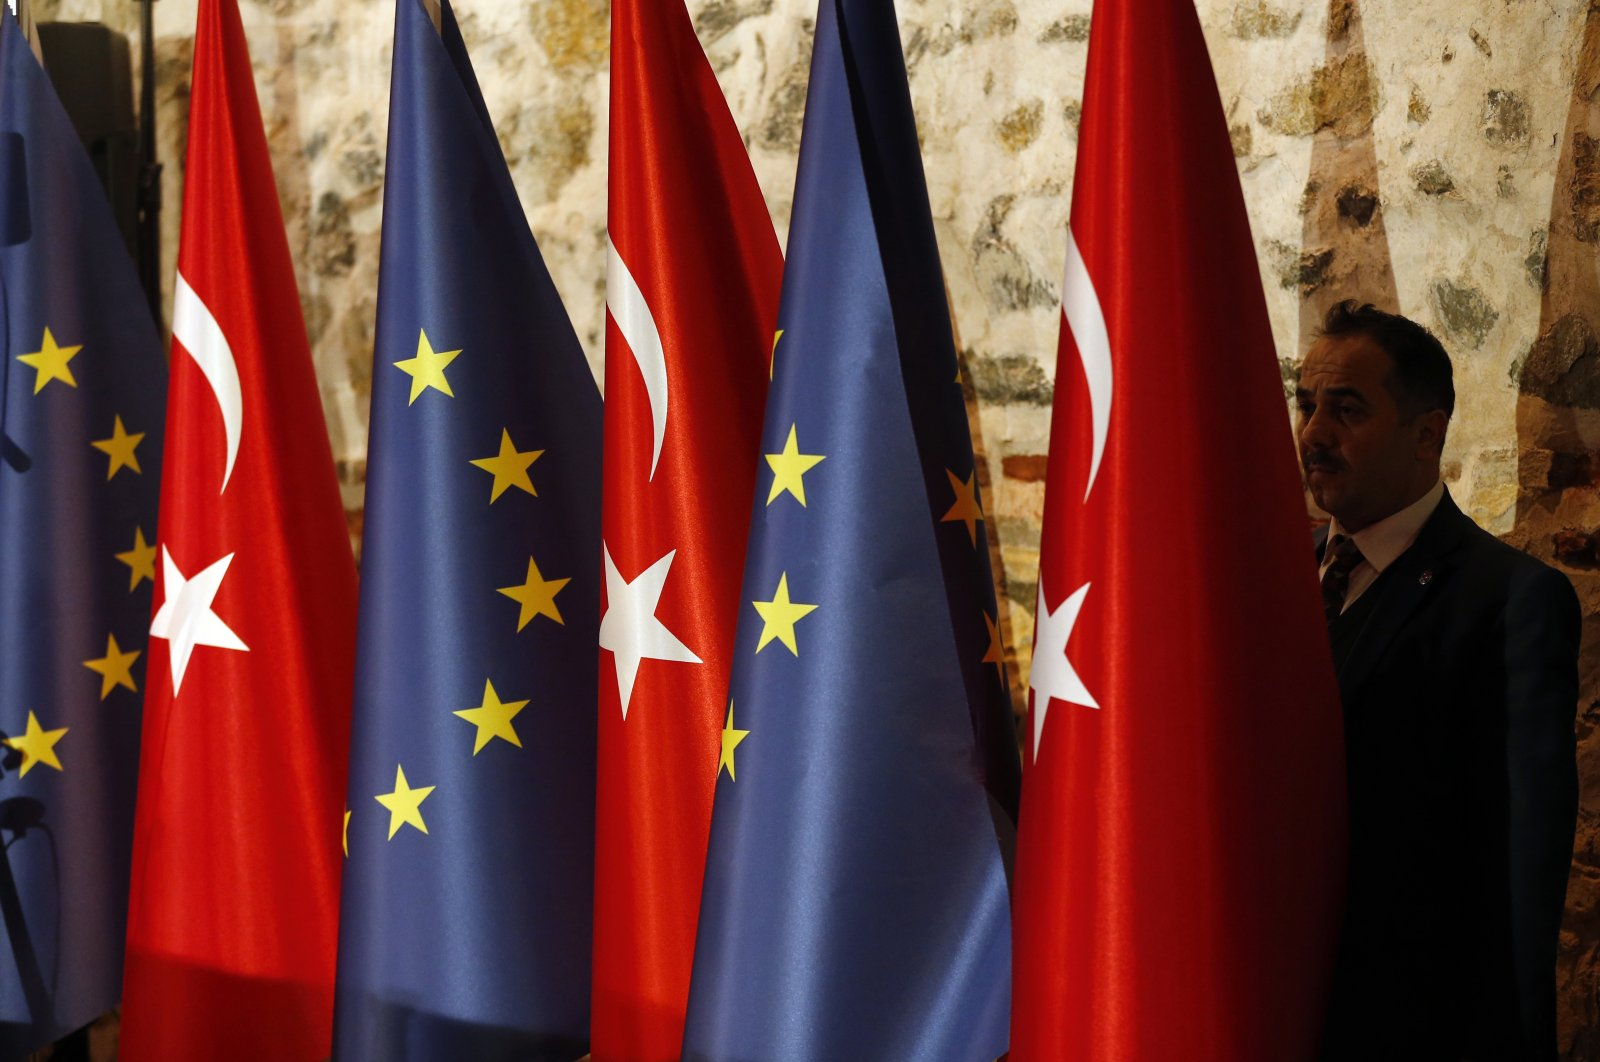 An official adjusts Turkey's and European flags prior to the opening session of a high-level meeting between EU and Turkey, in Istanbul, Feb. 28, 2019. (AP Photo)